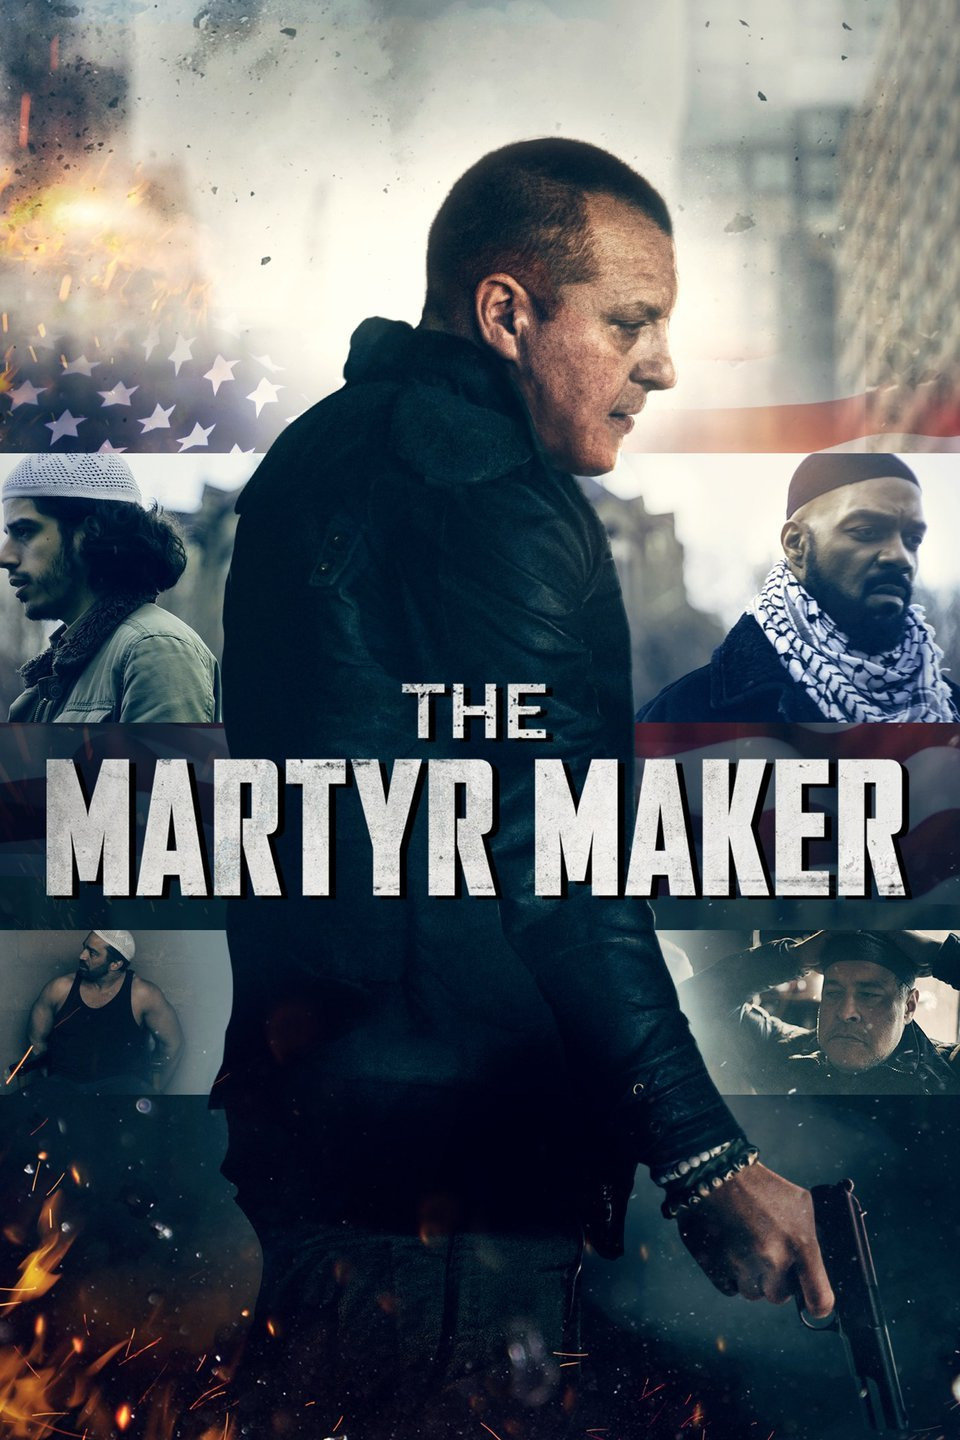 The Martyr Maker Full Movie in Hindi (2018) Download | 480p (200MB) | 720p (900MB)